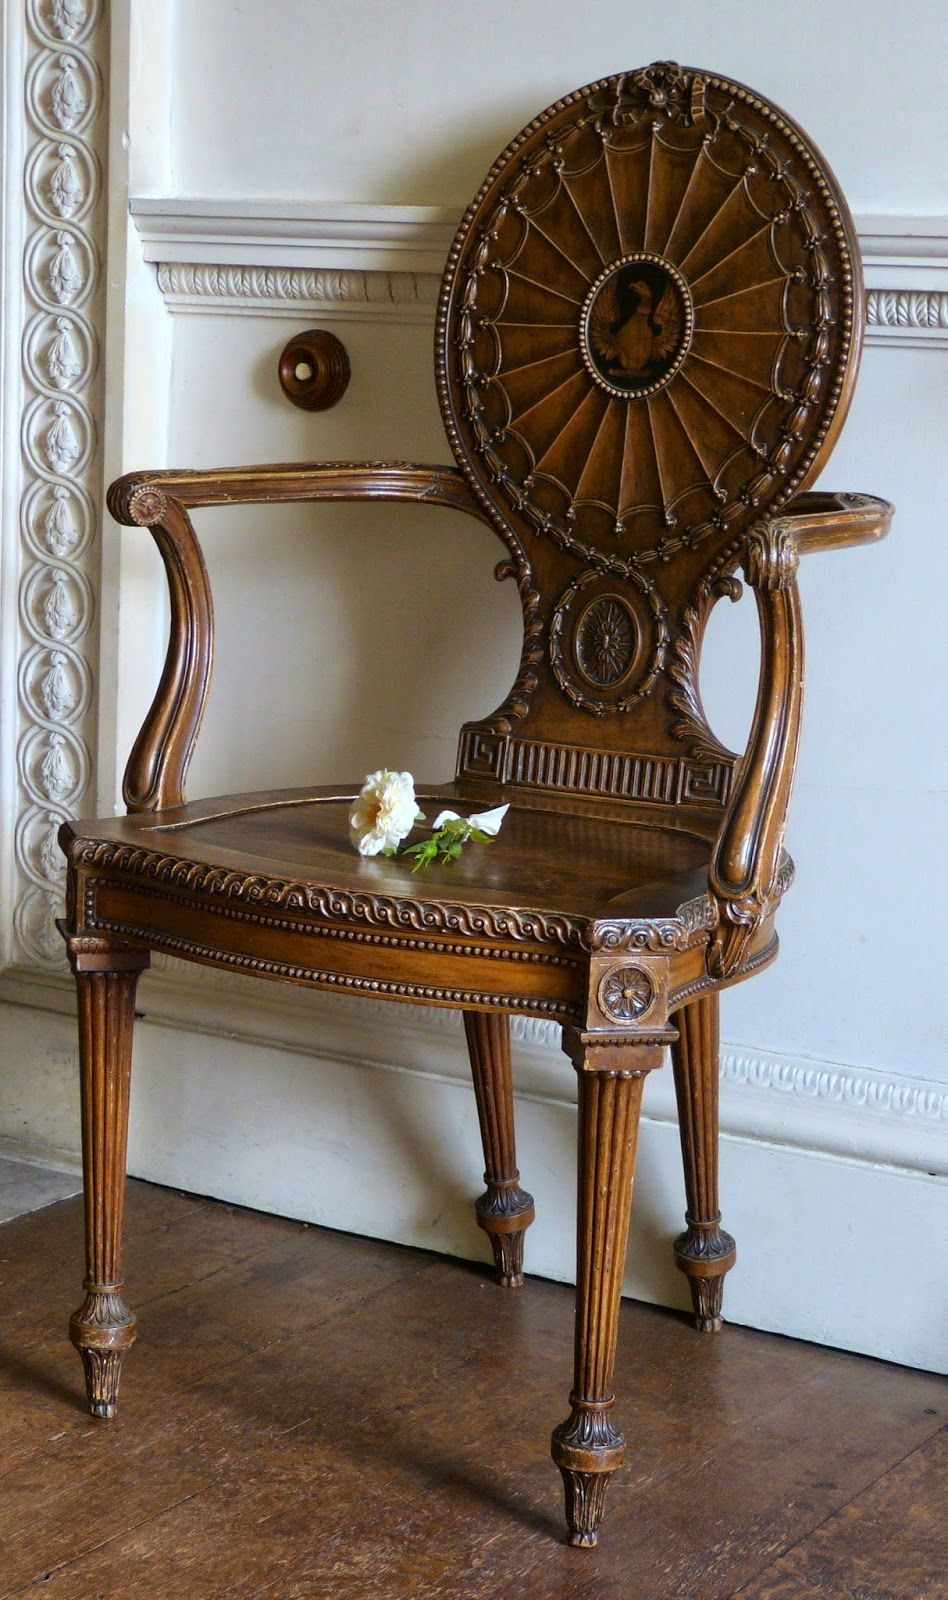 Antique Reproduction Furniture Uk Fresh Nostell Priory – A Regency History Guide